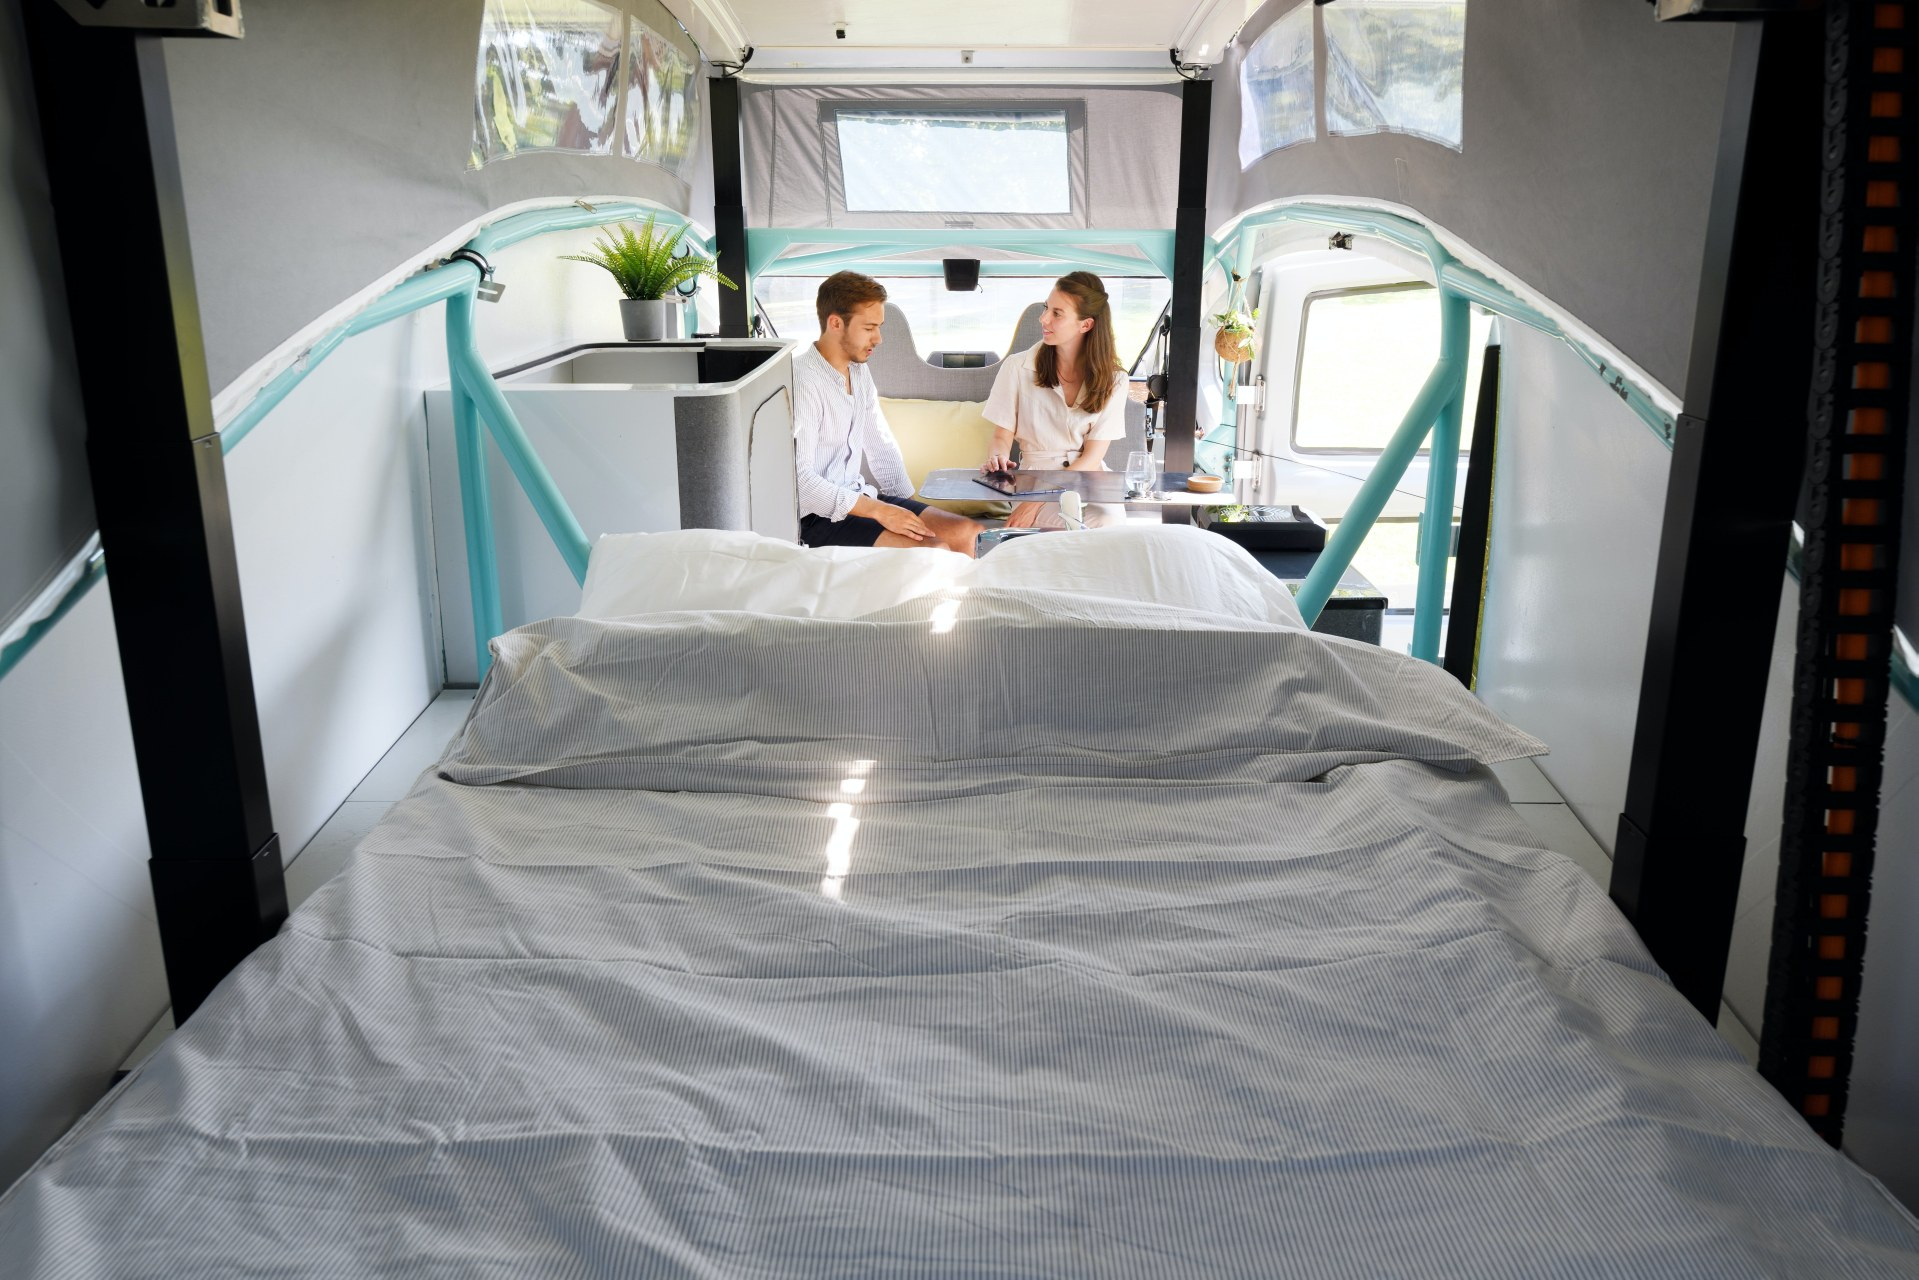 World's First Solar Powered Mobile Home to Go on 1,800 Mile Journey -  autoevolution